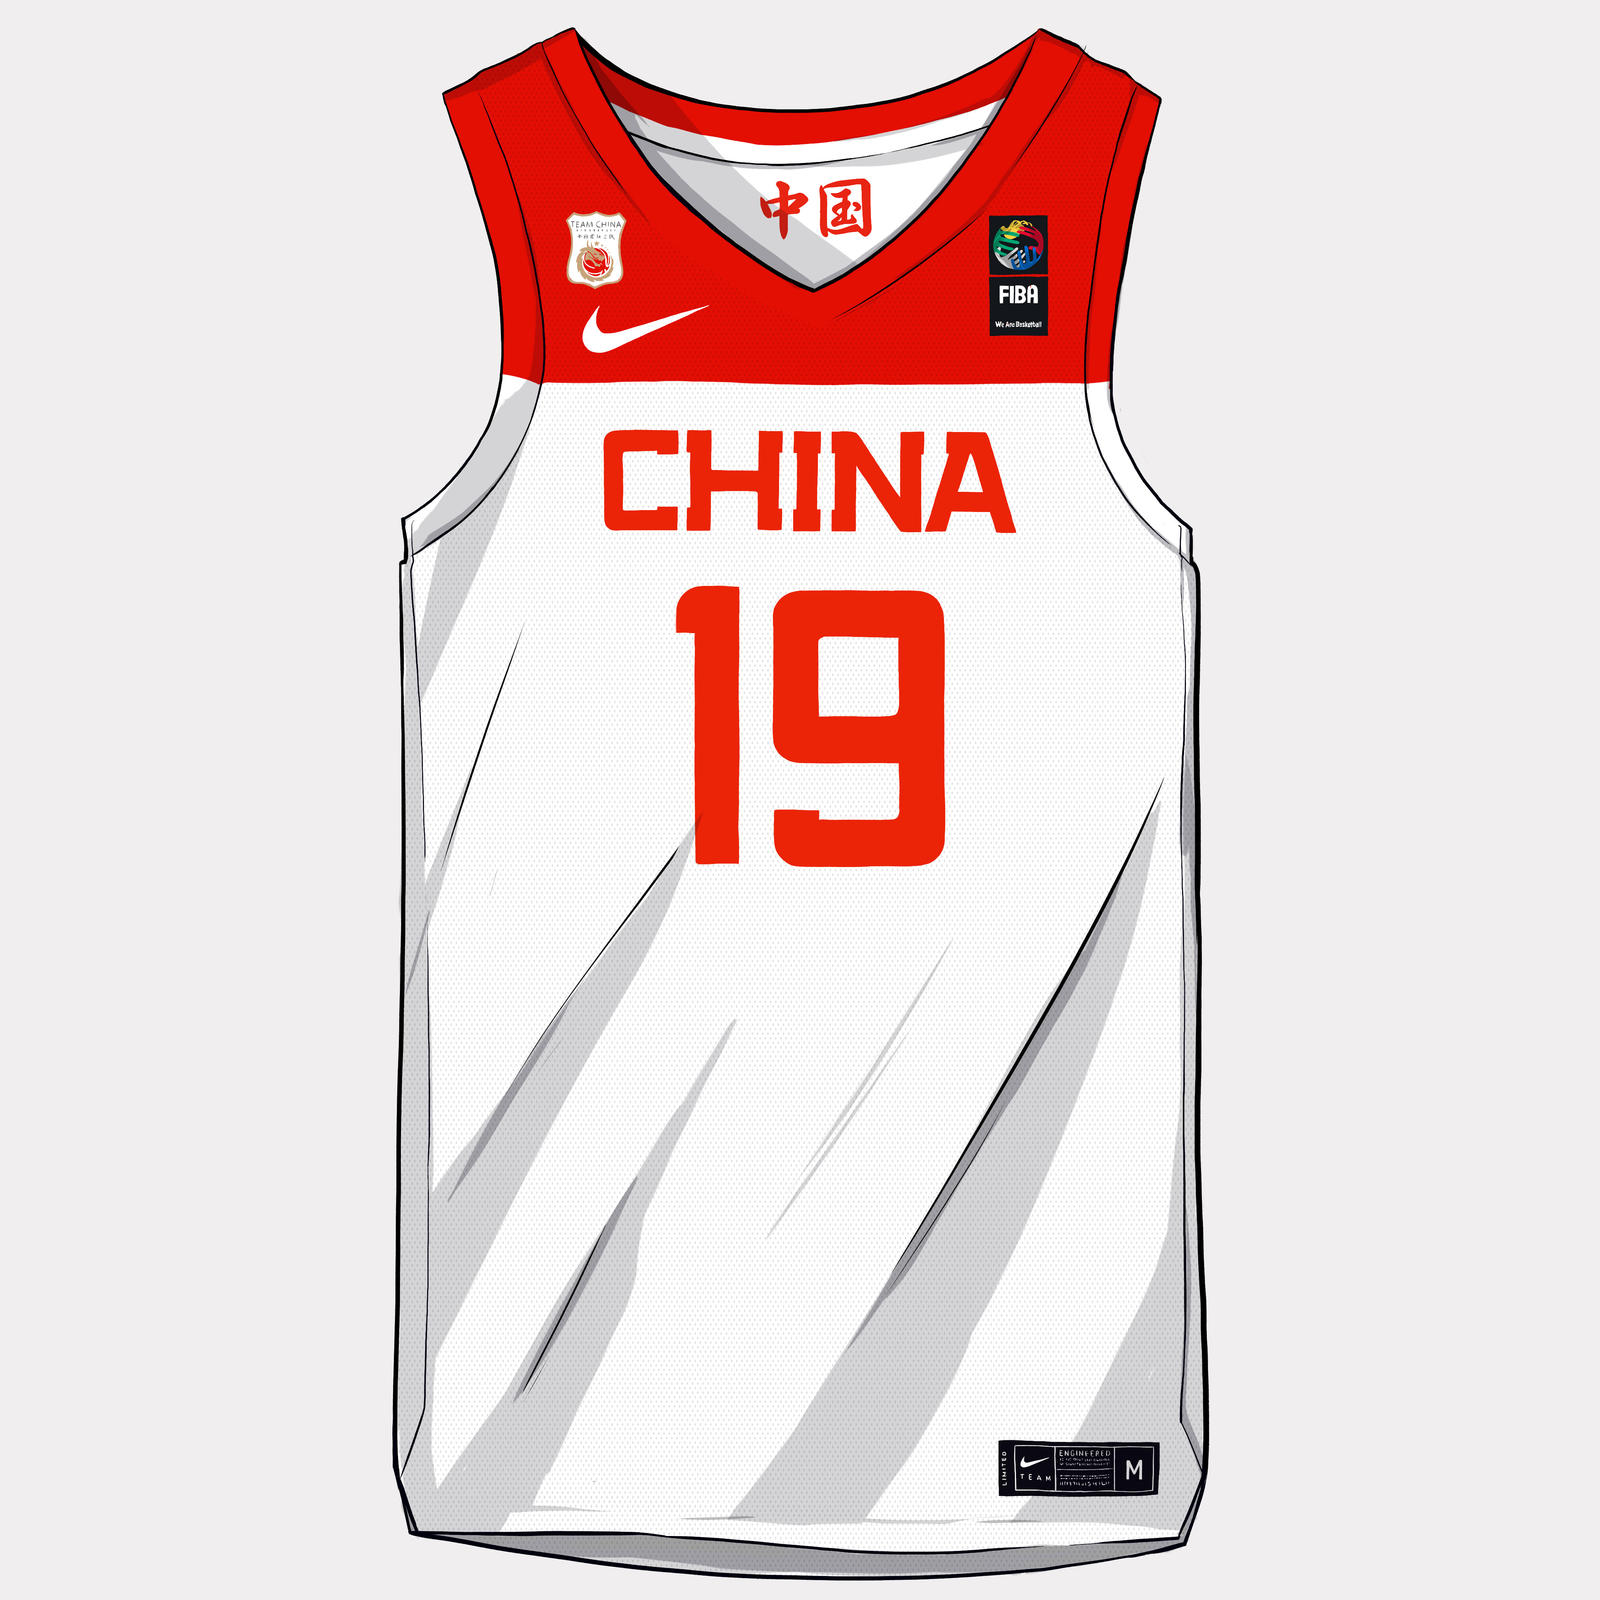 FIBA World Cup 2019 Nike and Jordan Brand Uniforms 38